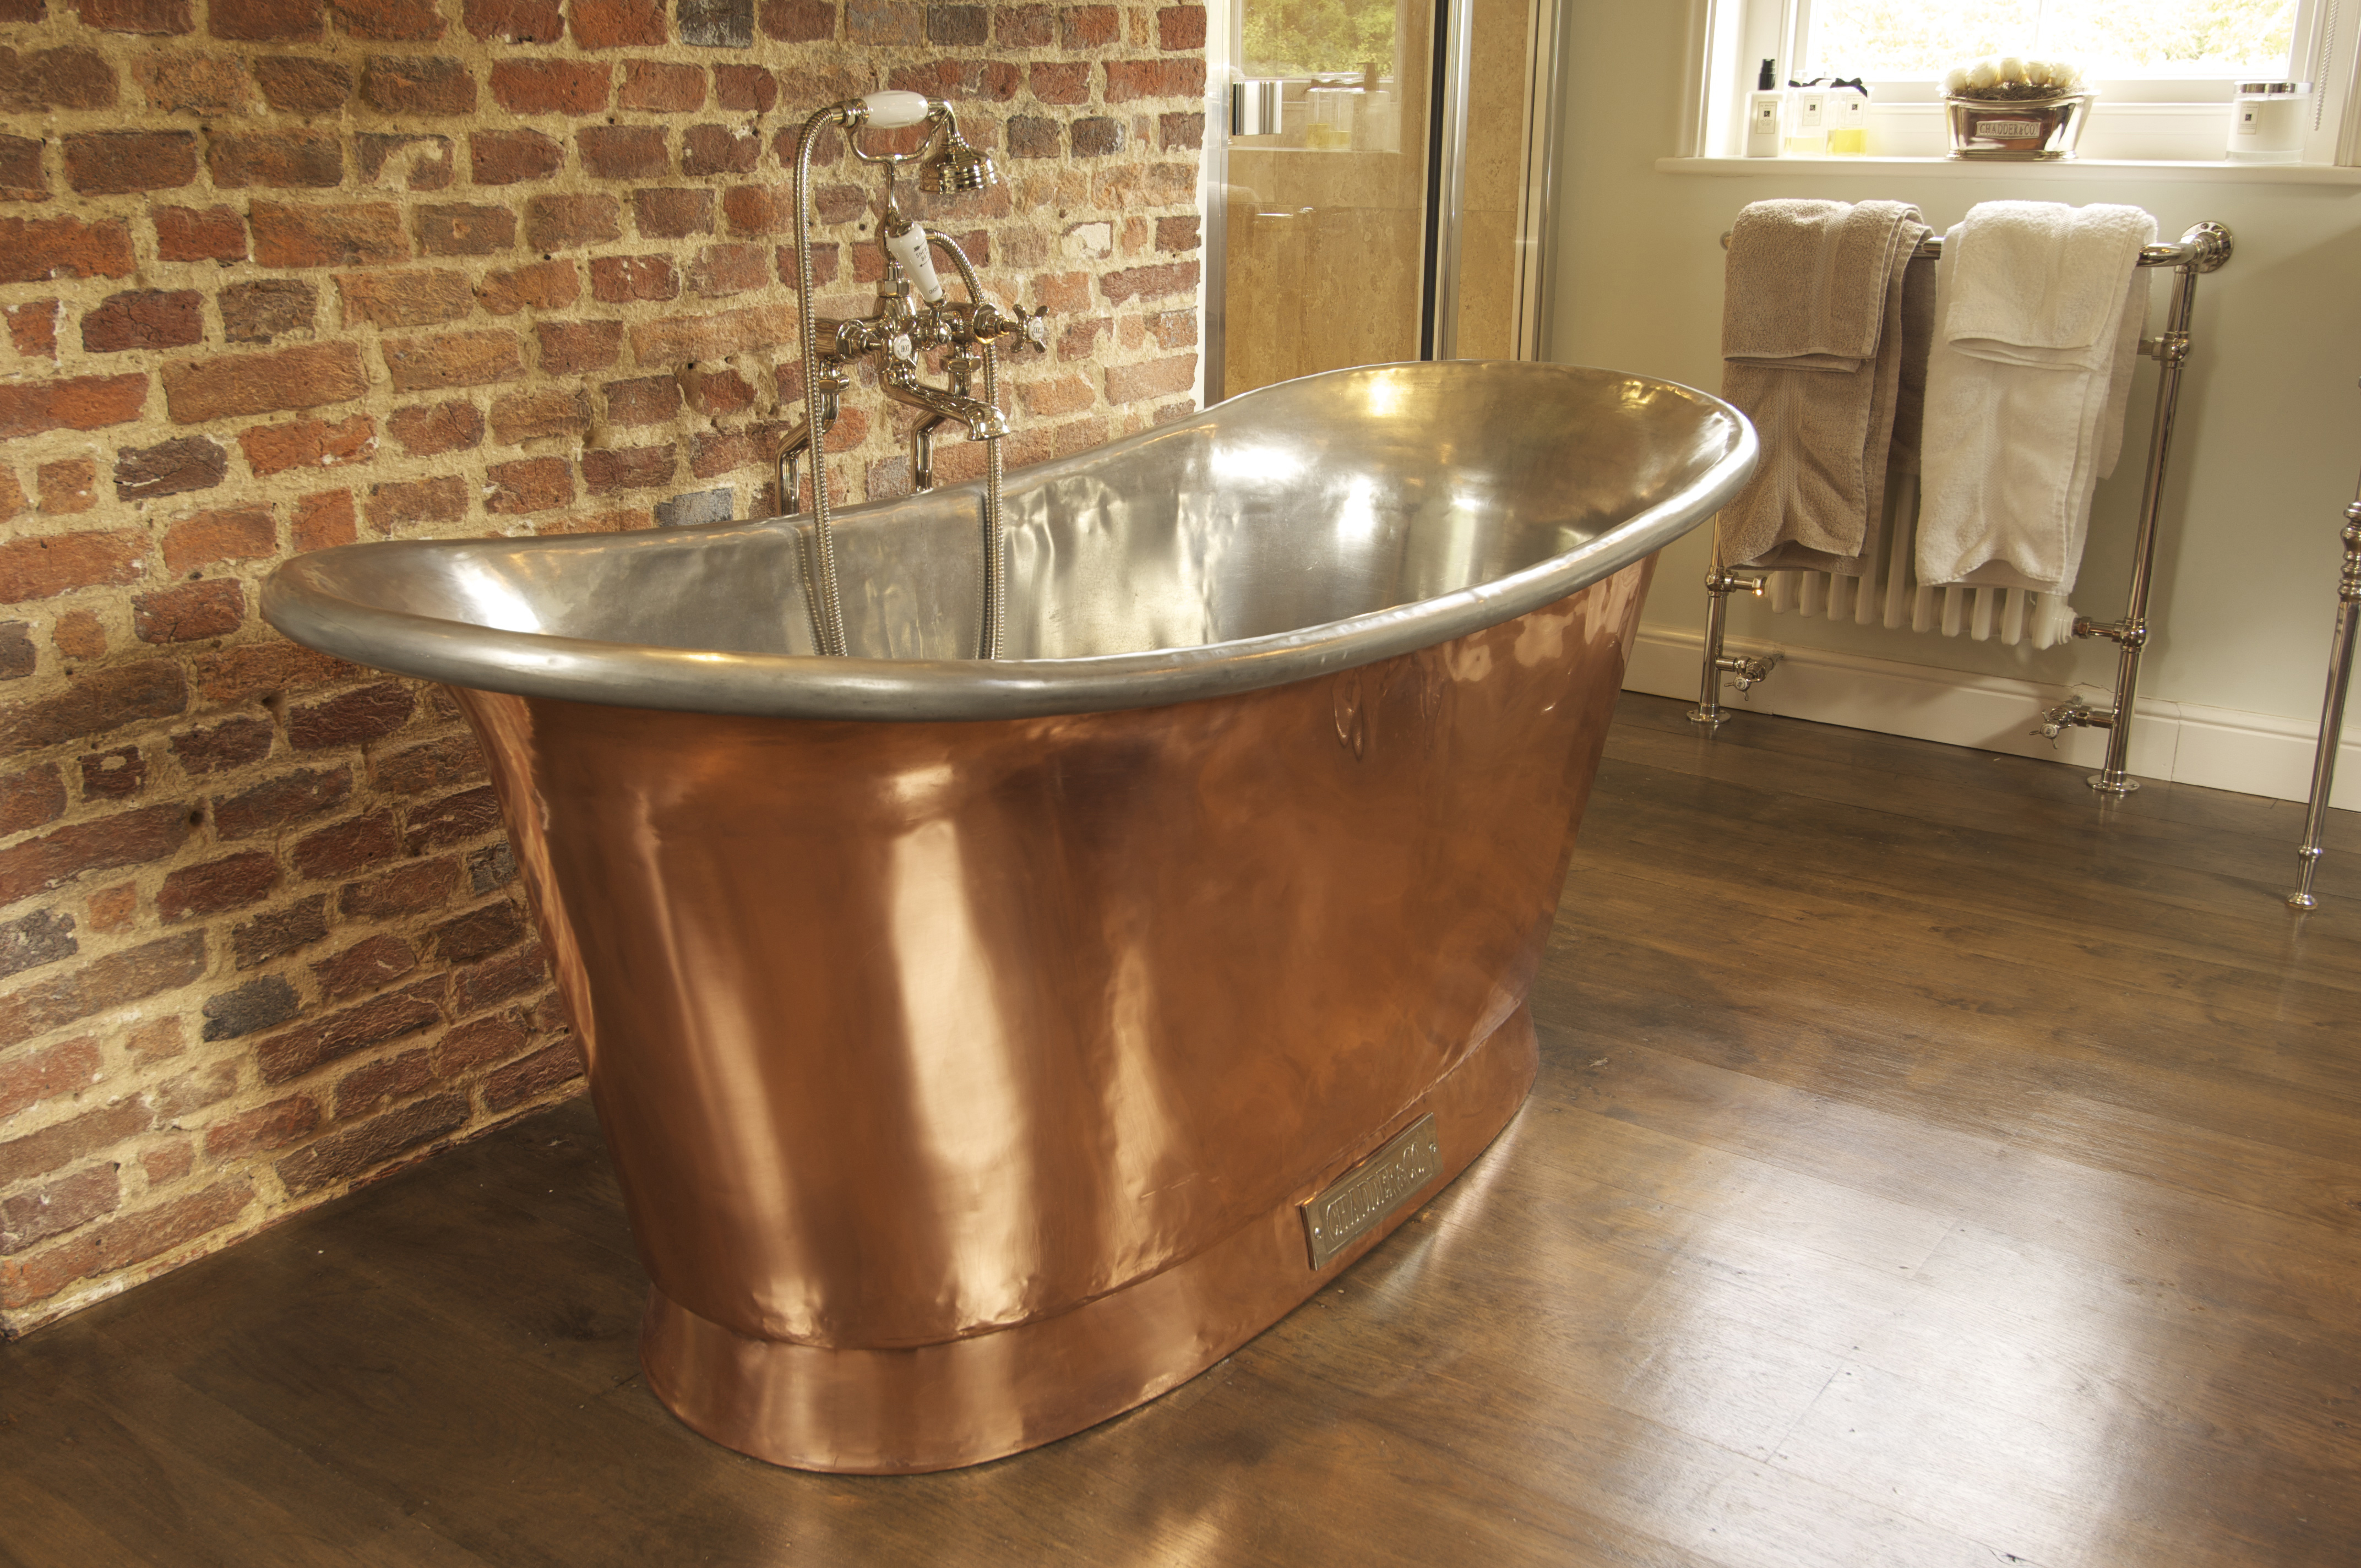 walk tub japanese bathtubs copper outdoor wooden soaking bathtub designs tubs soaker in design